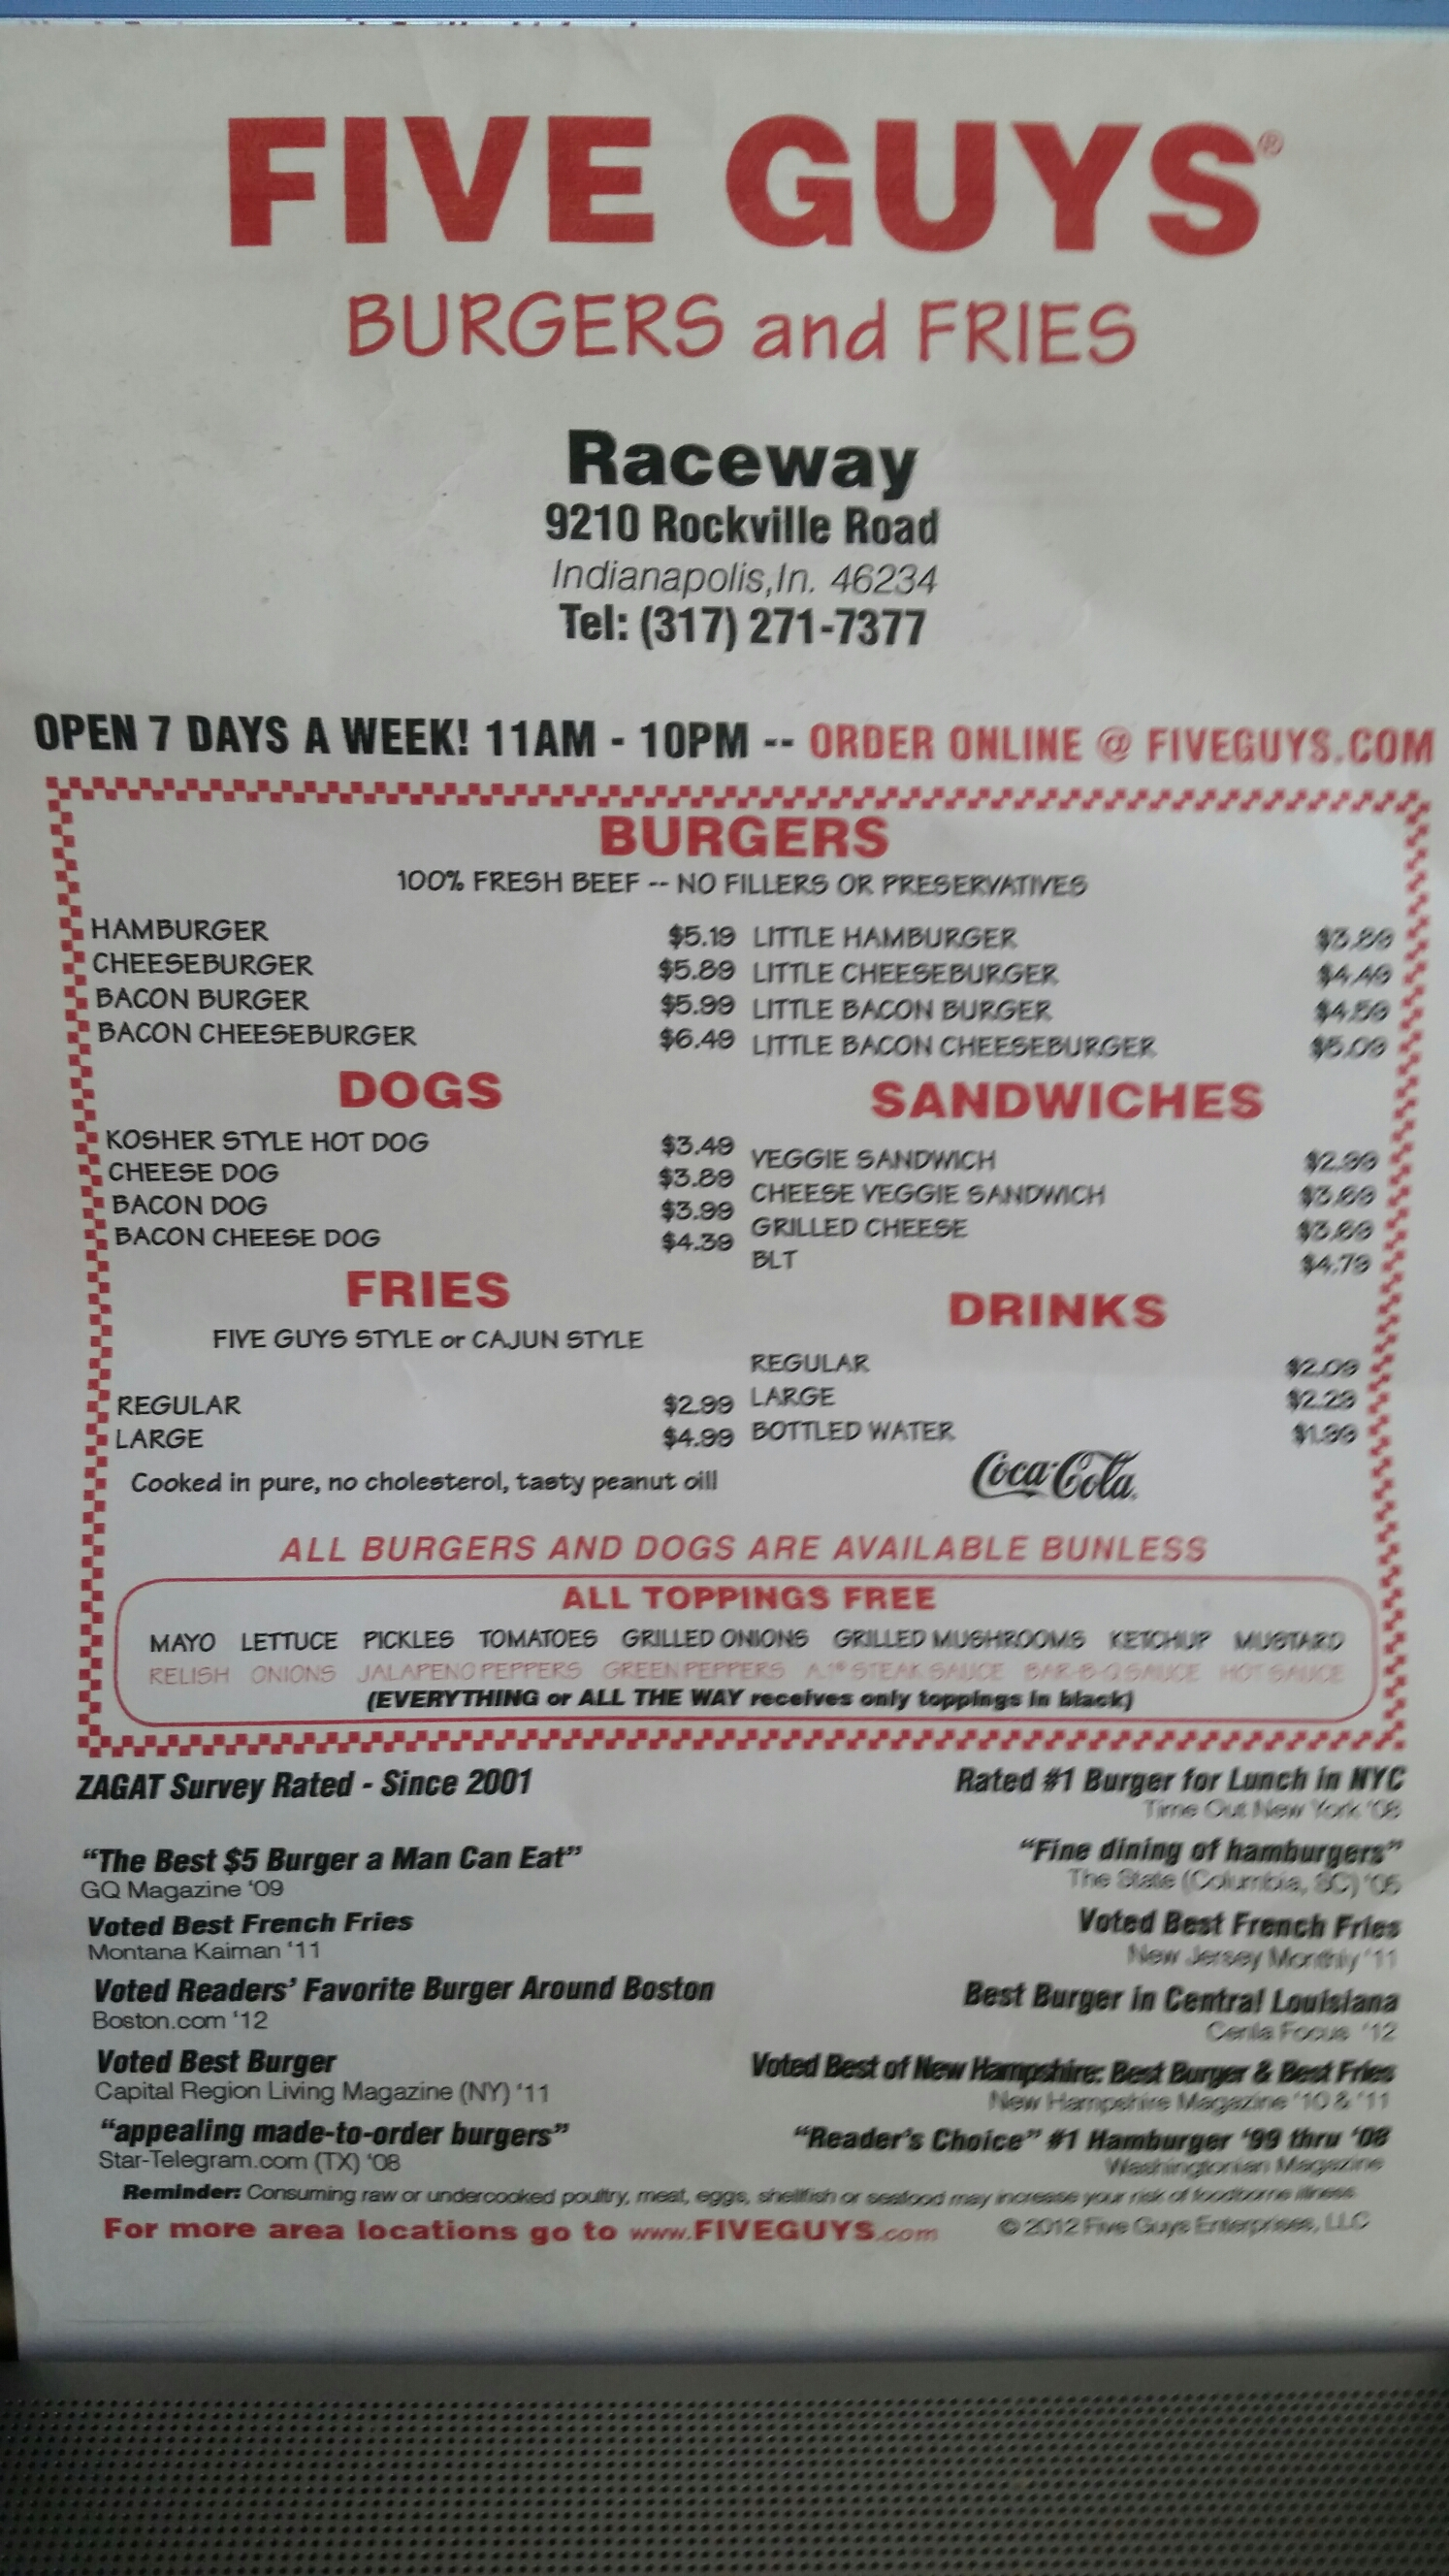 Printable Five Guys Menu | myideasbedroom.com